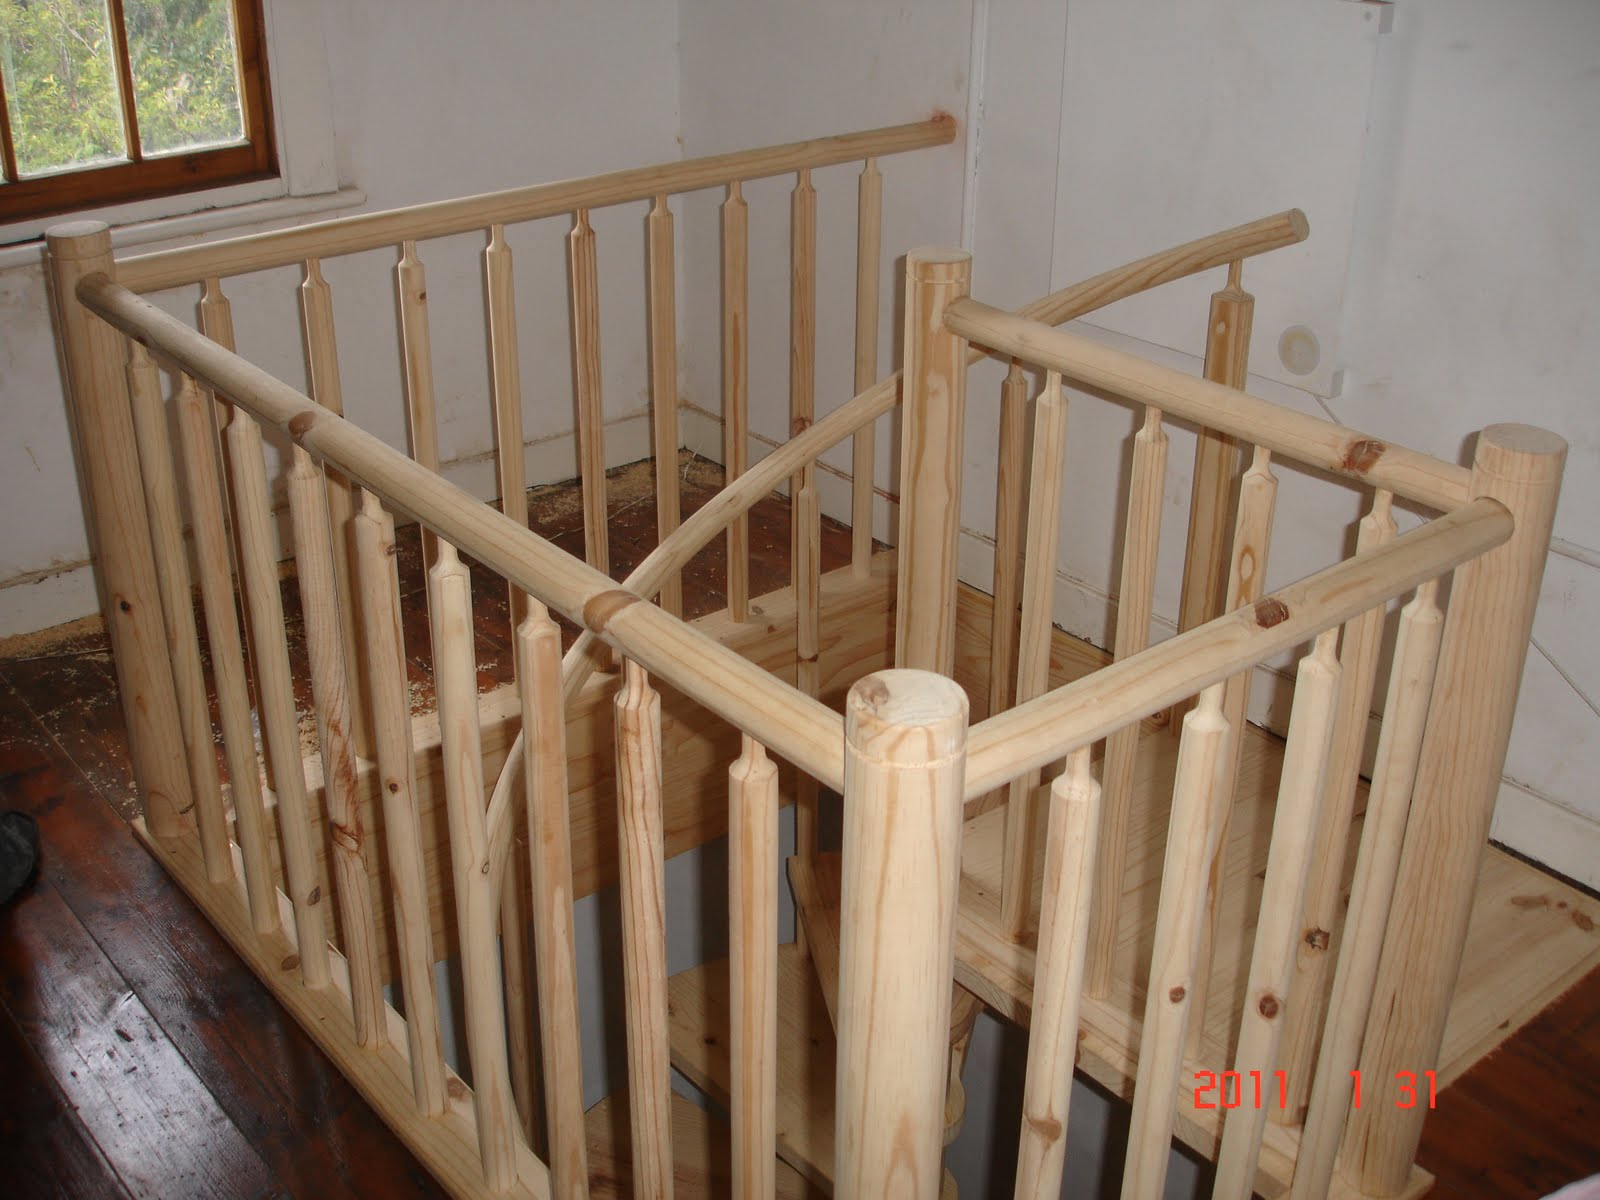 D.I.Y Spiral Staircase With Round Balusters And Rail